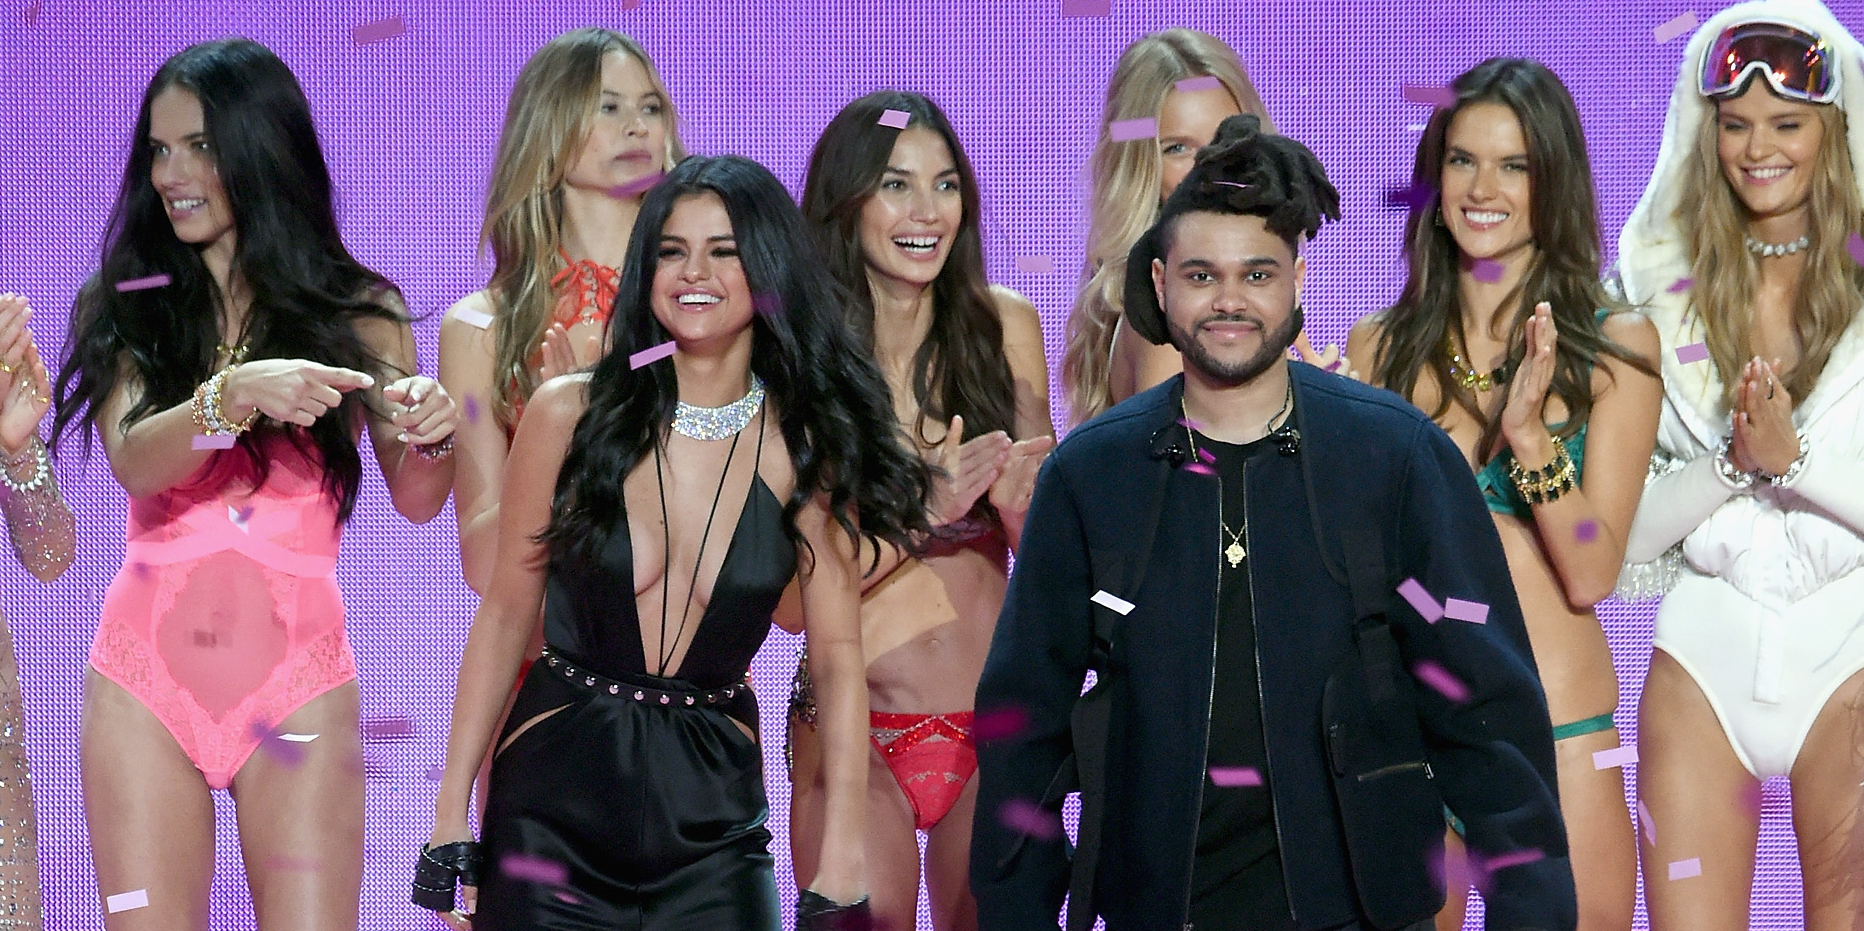 Spooky Lookalikes: Selena Gomez's Parents Look *Exactly* Like Gomez and The Weeknd